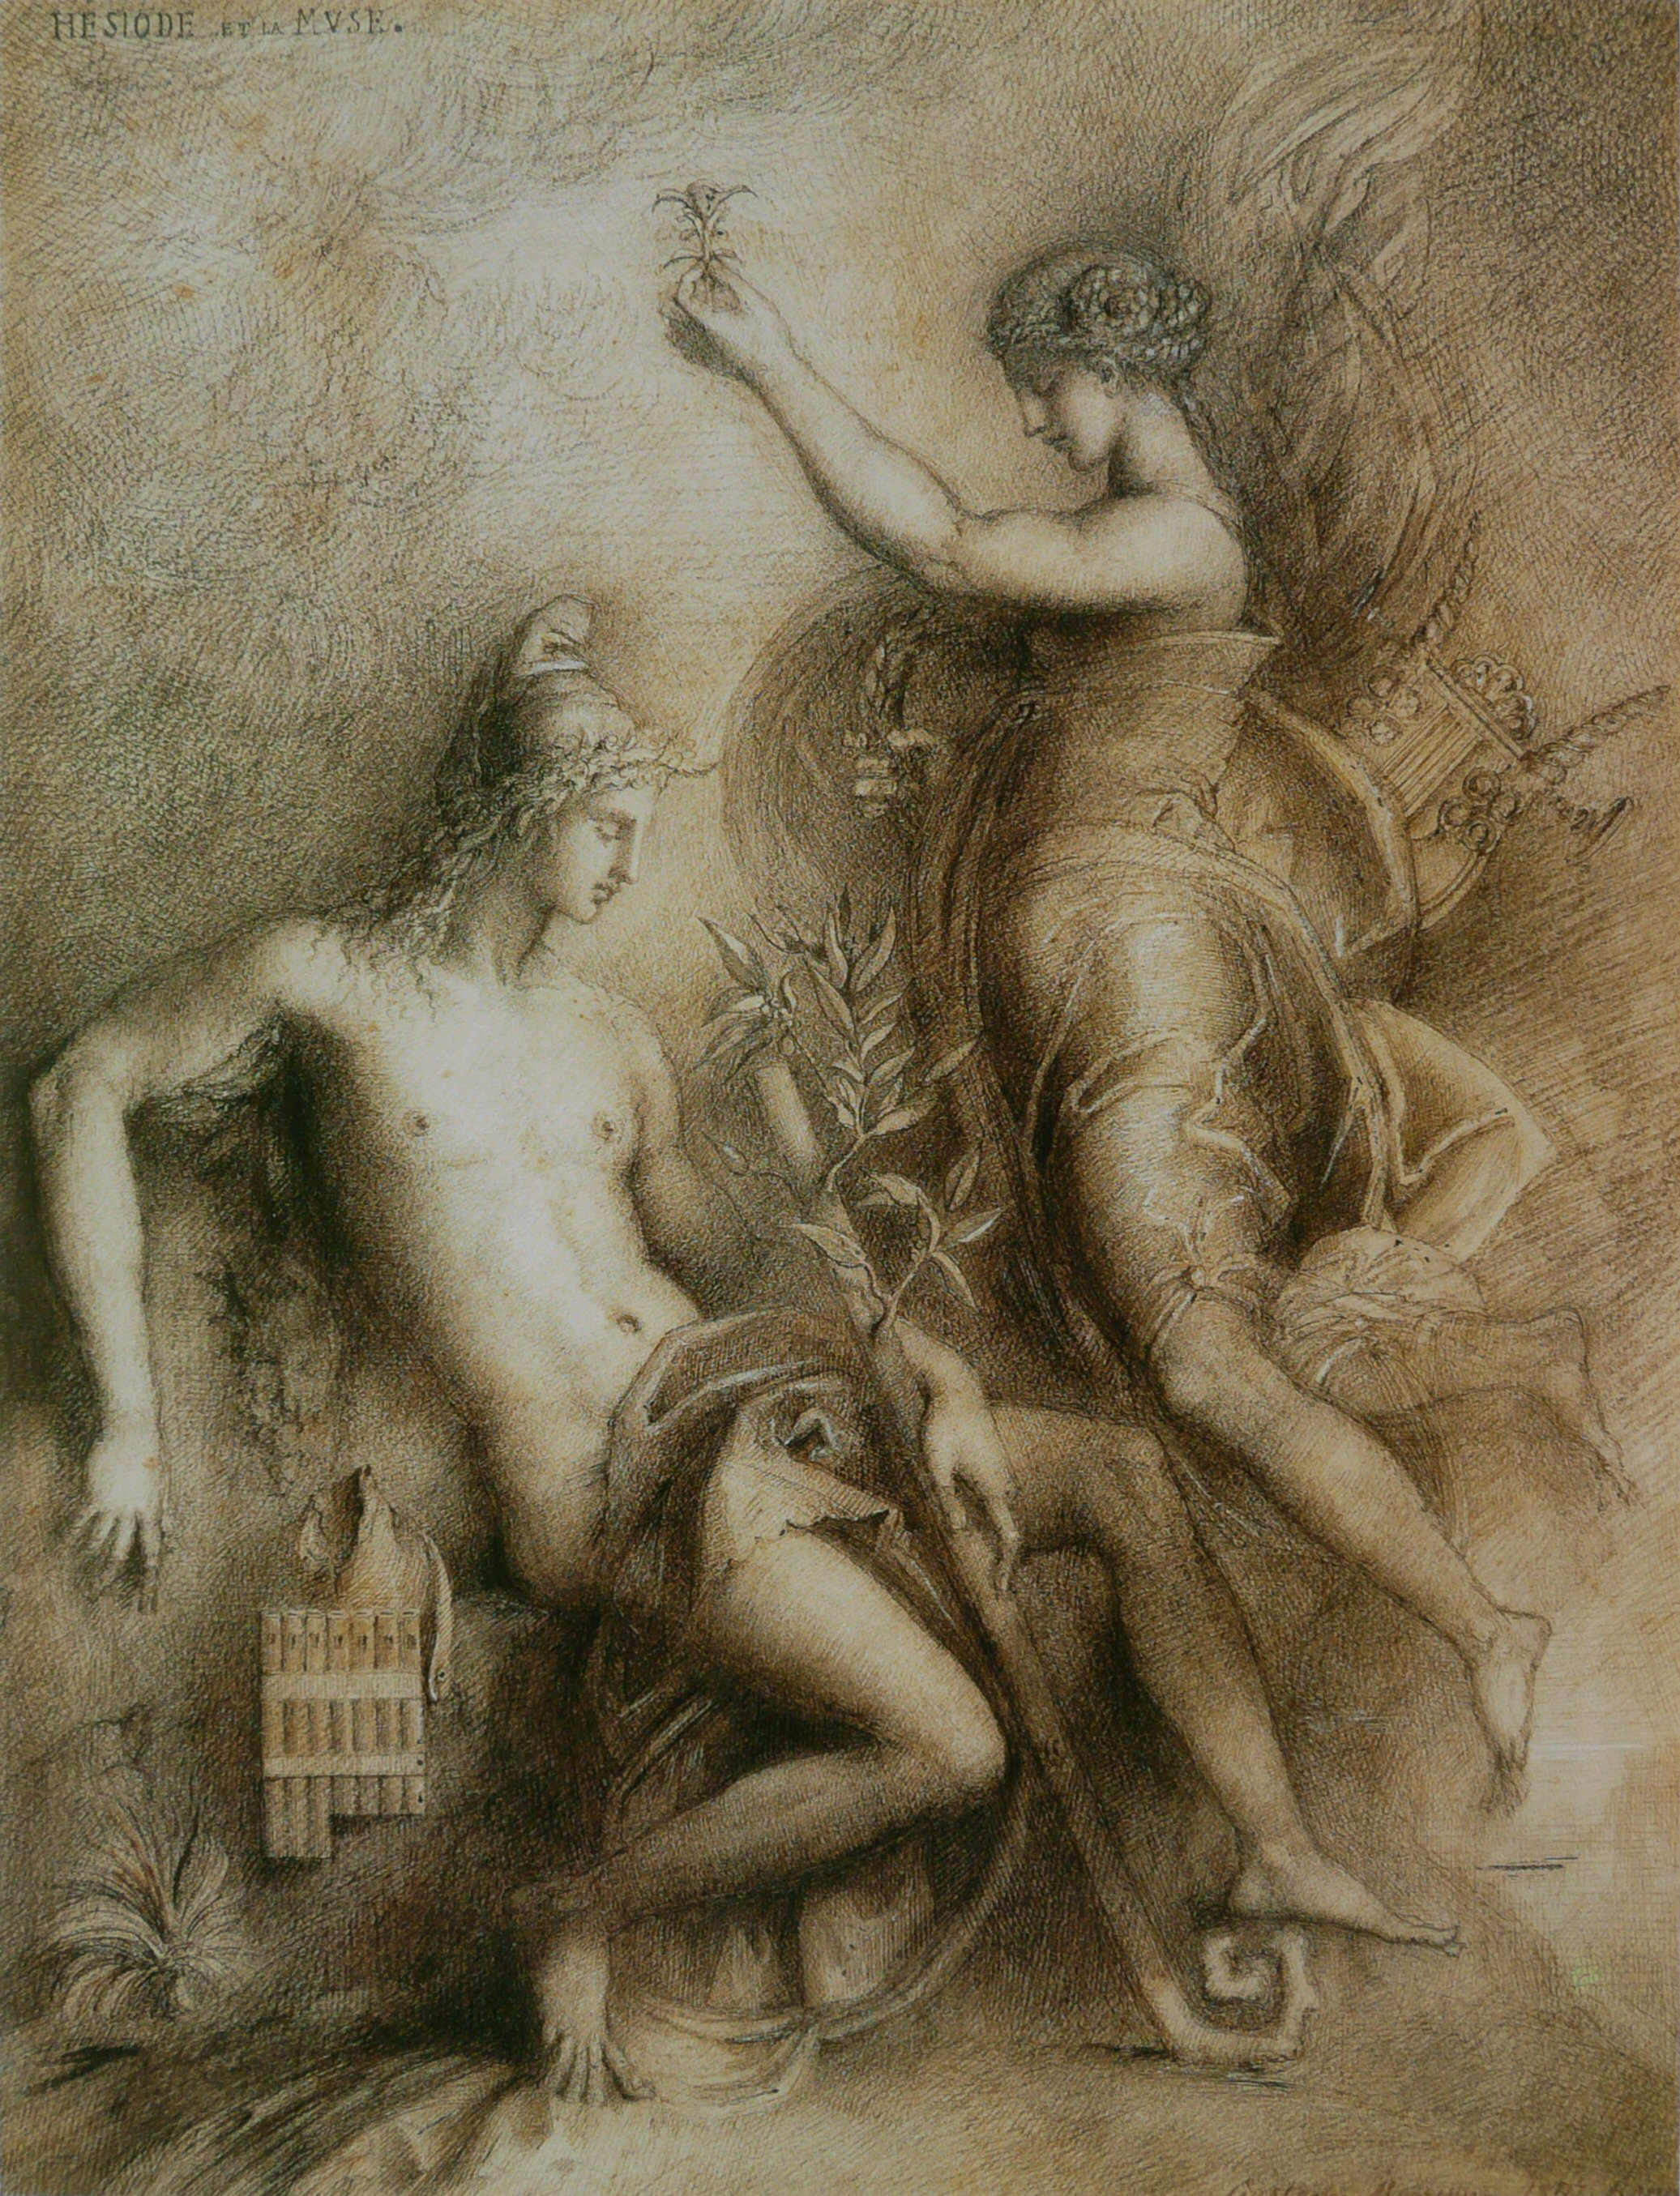 http://upload.wikimedia.org/wikipedia/commons/7/76/Gustave_Moreau_-_H%C3%A9siode_et_la_Muse.jpg